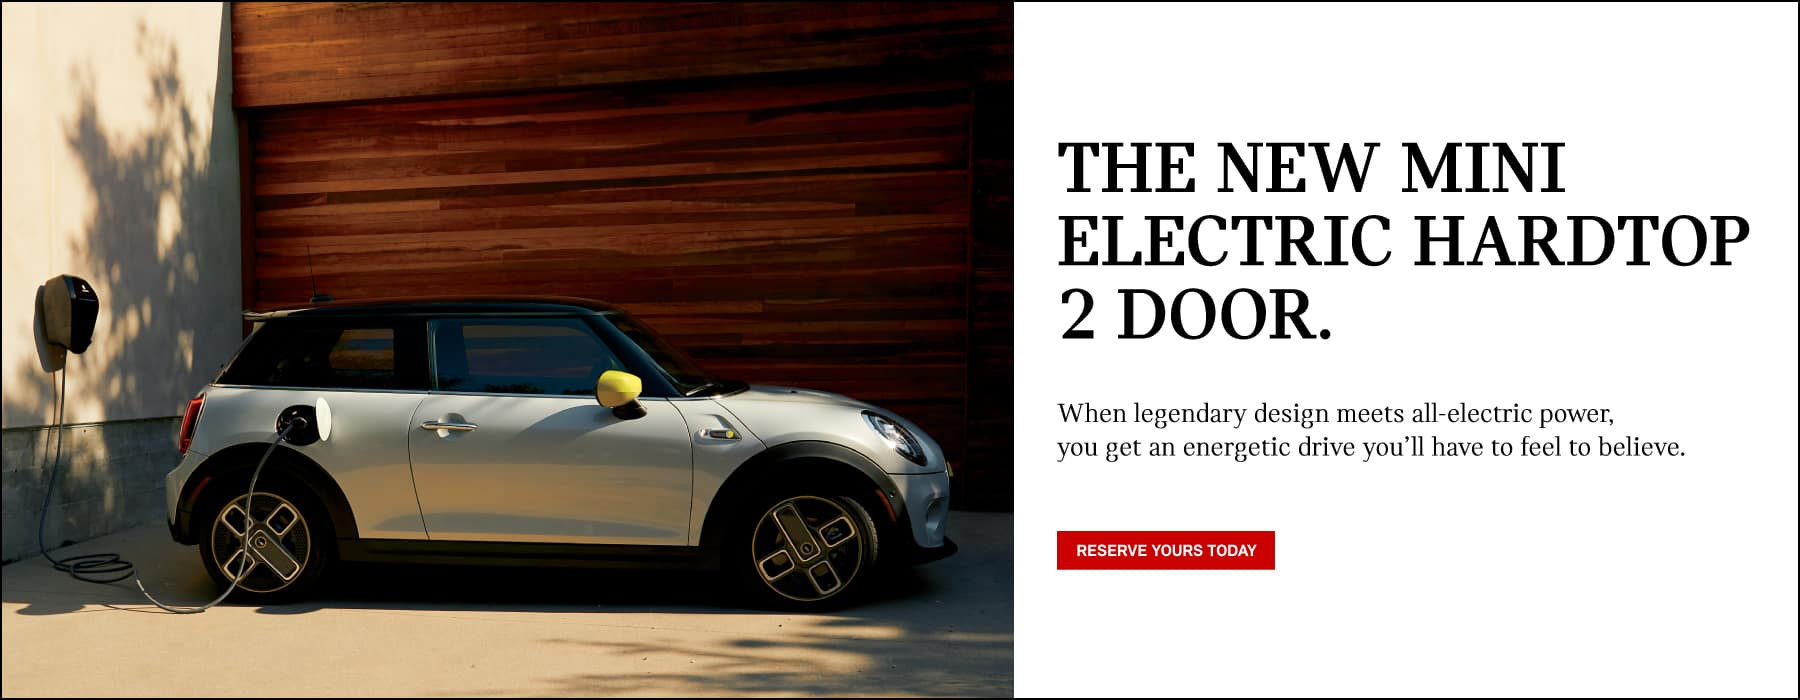 THE NEW MINI ELECTRIC HARDTOP 2 DOOR. WHEN LEGENDARY DESIGN MEETS ALL-ELECTRIC POWER, YOU GET AN ENERGETIC DRIVE YOU'LL HAVE TO FEEL TO BELIEVE.